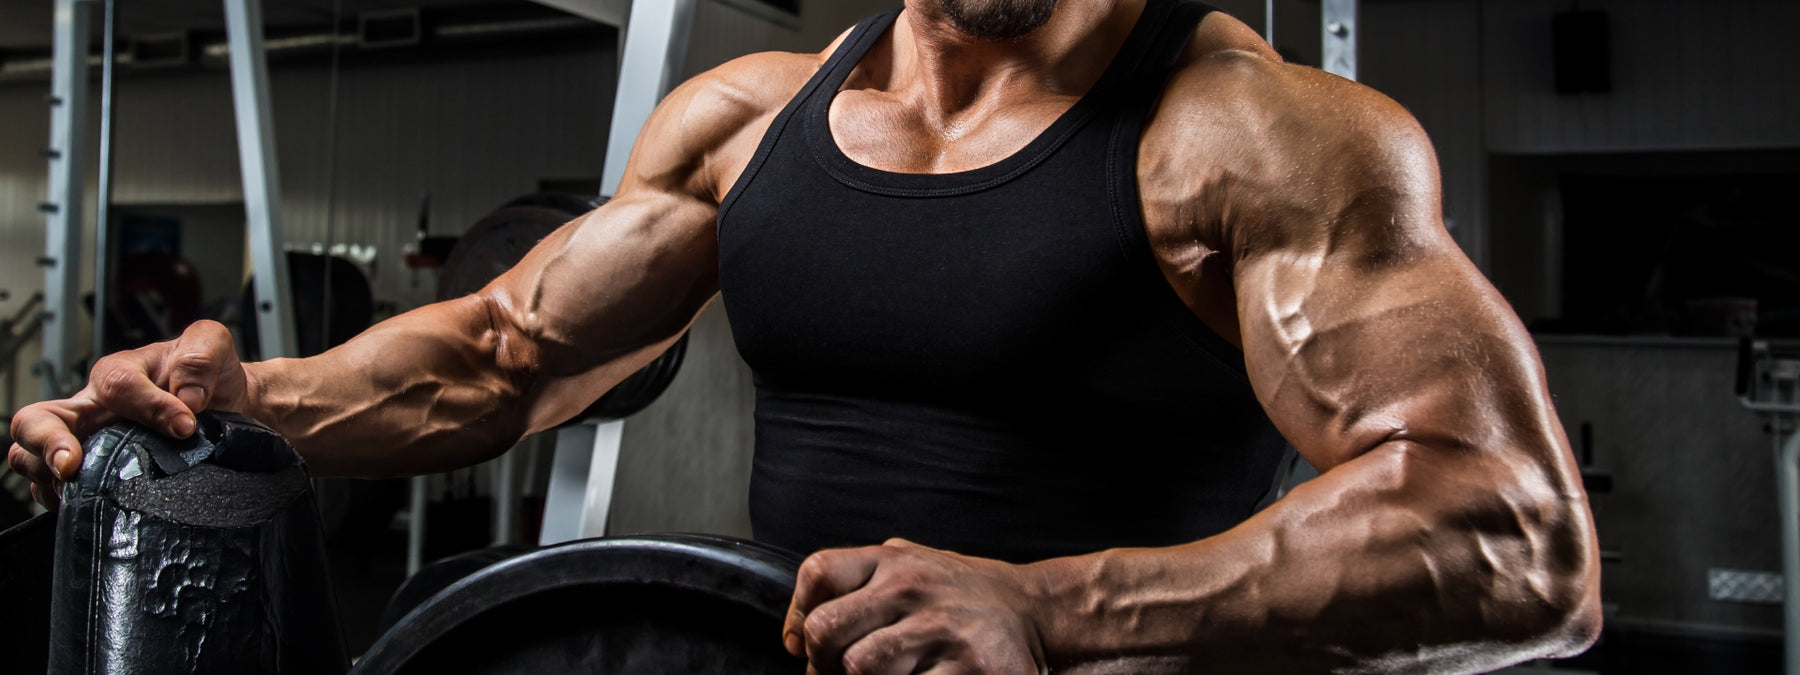 10 Bicep Exercises You Have to Try